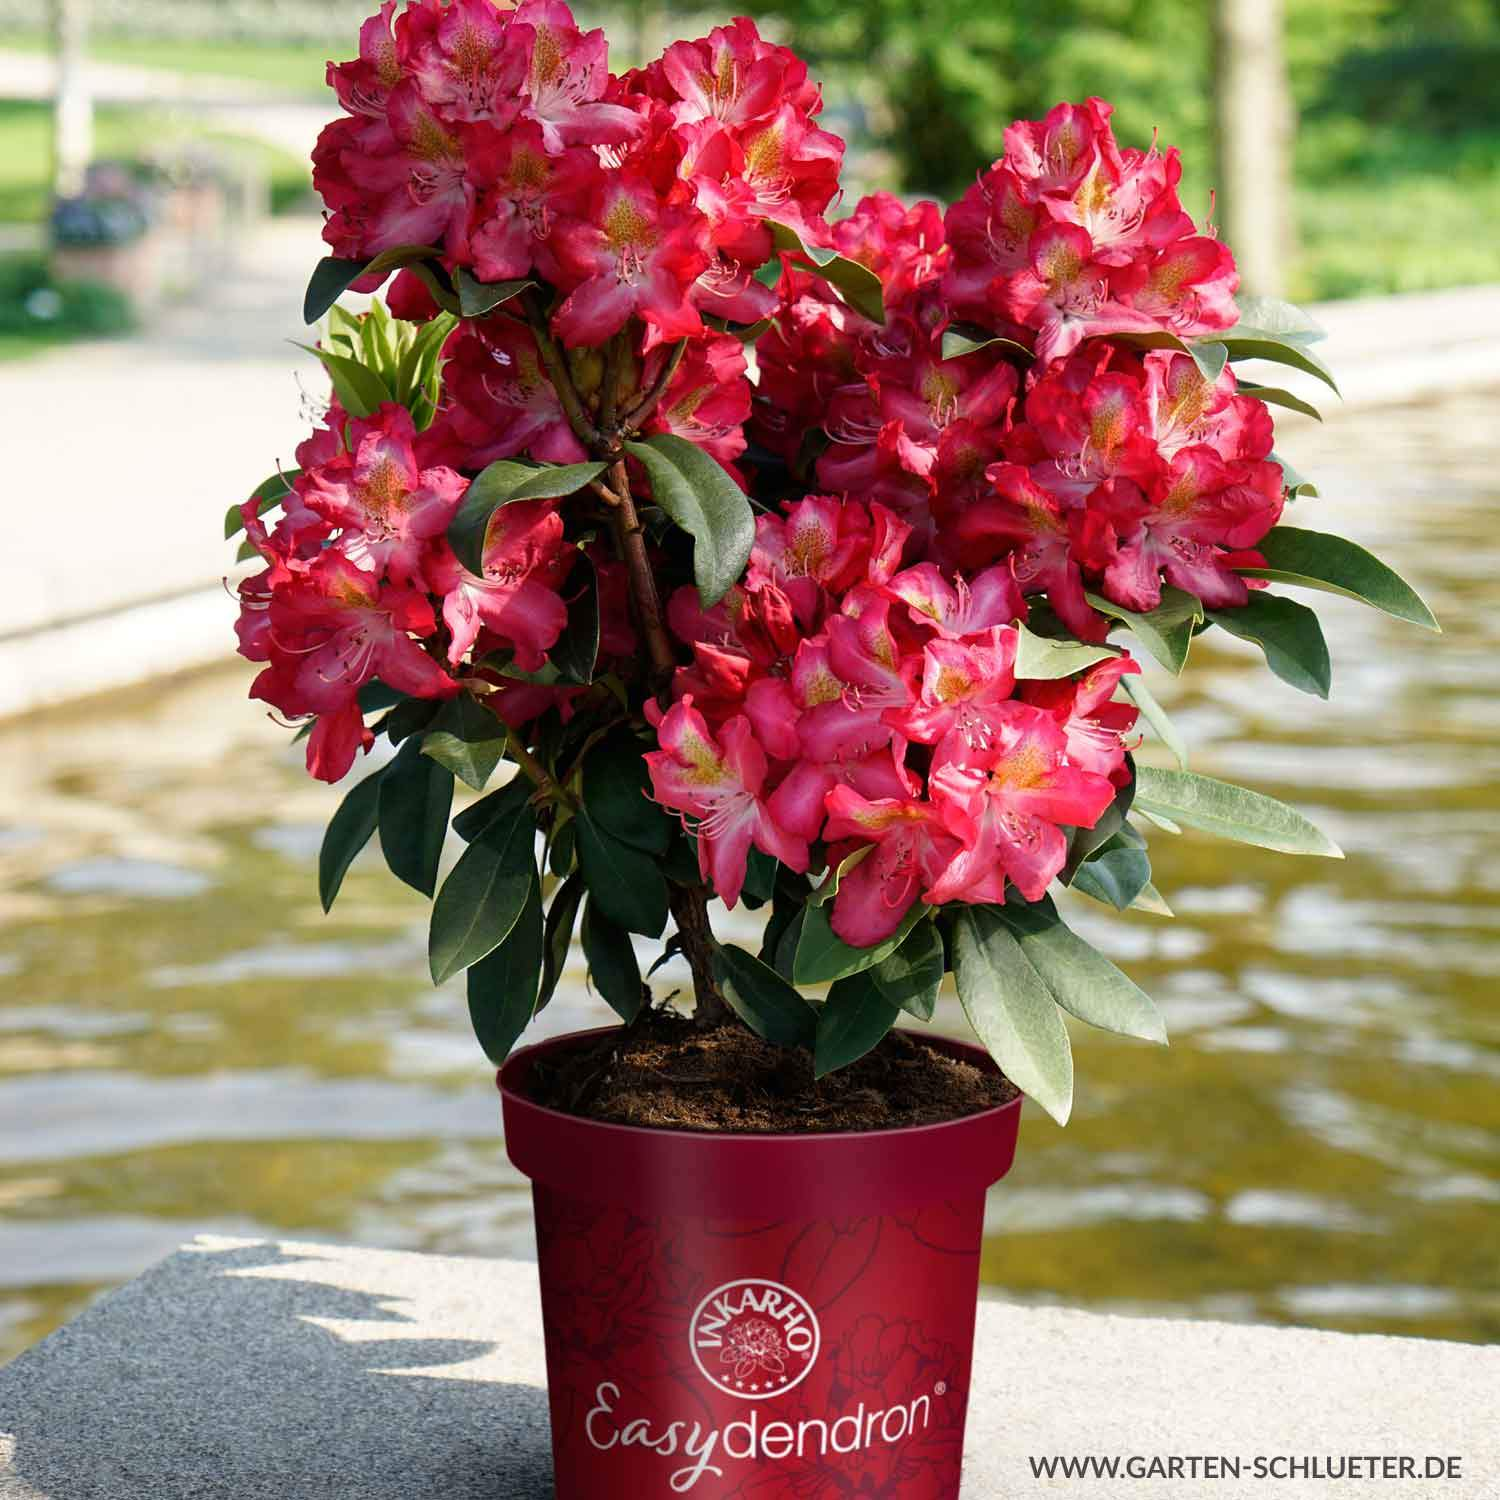 1 Rhododendron Junifeuer Easydendron Rhododendron hybride